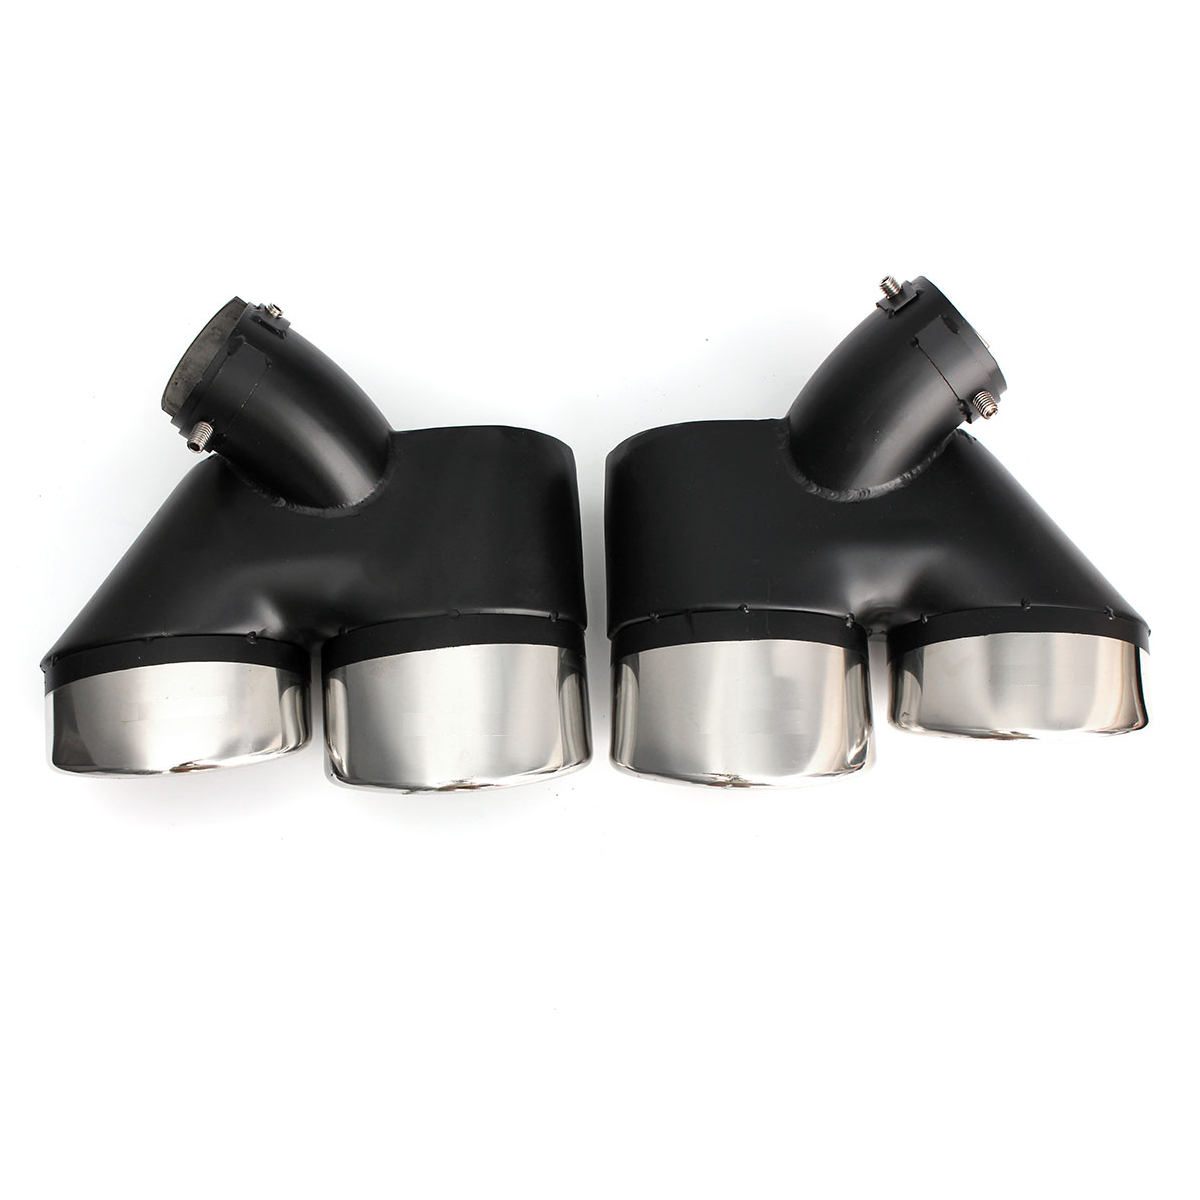 1pair w211 exhaust pipe dual tip for mercedes benz alex nld for Mercedes benz exhaust